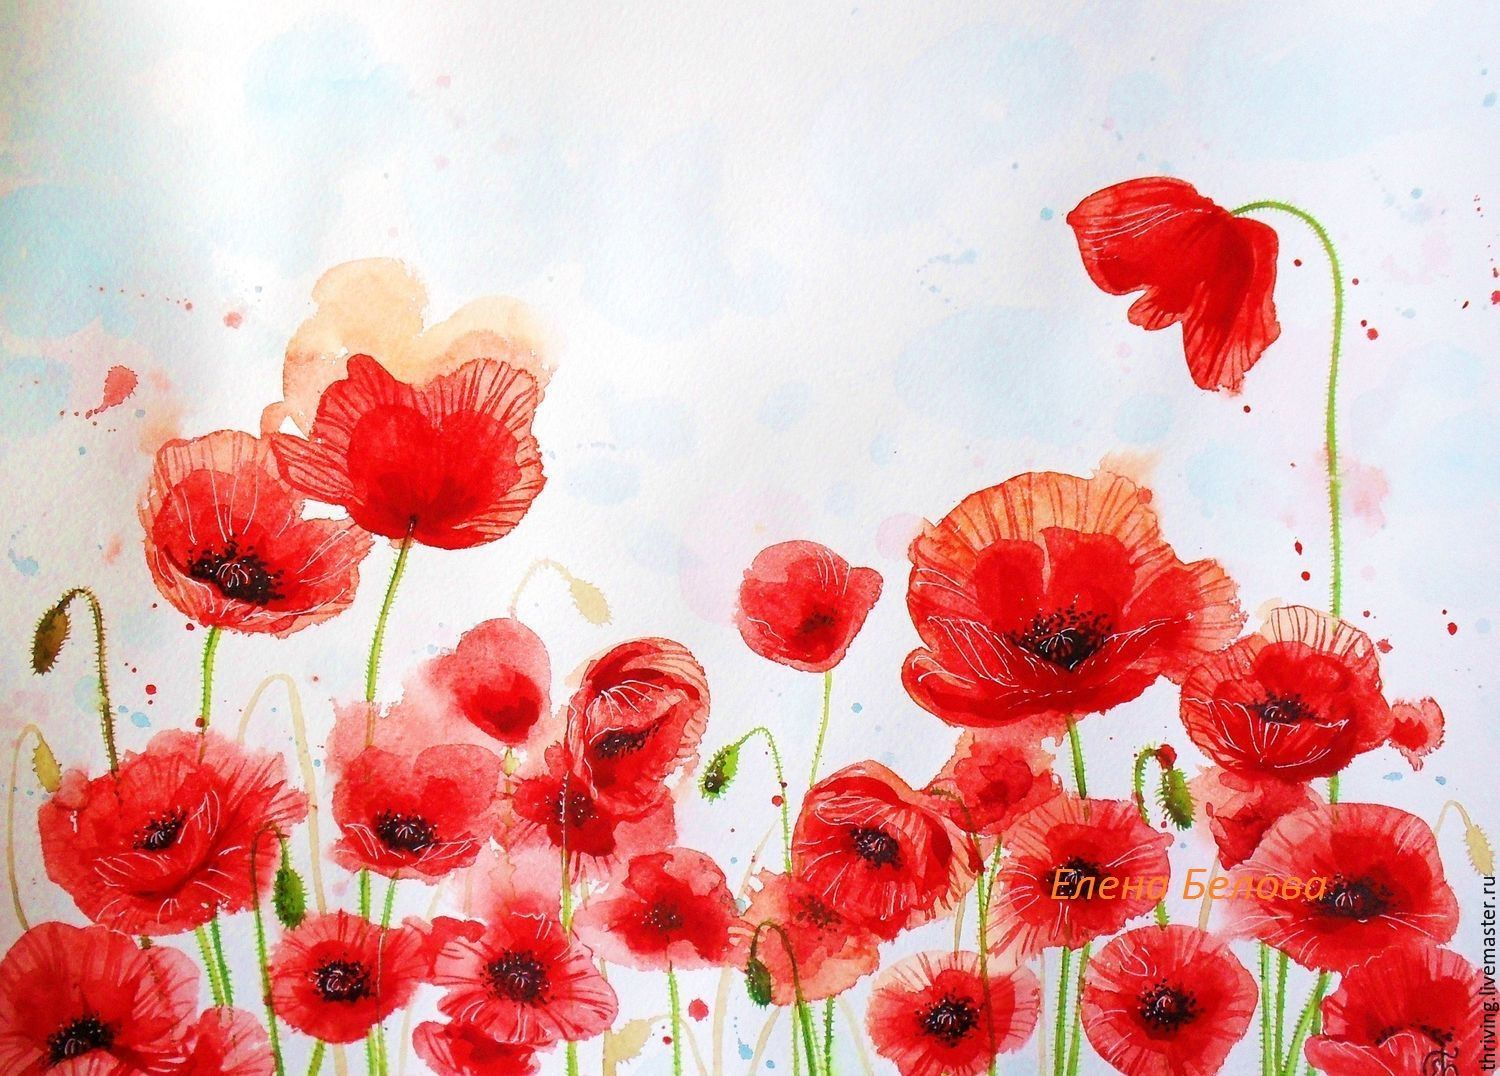 Painting poppies flowers for interior living room bedroom red white buy painting with poppies bright poppies painting painting poppies painting with red flowers mightylinksfo